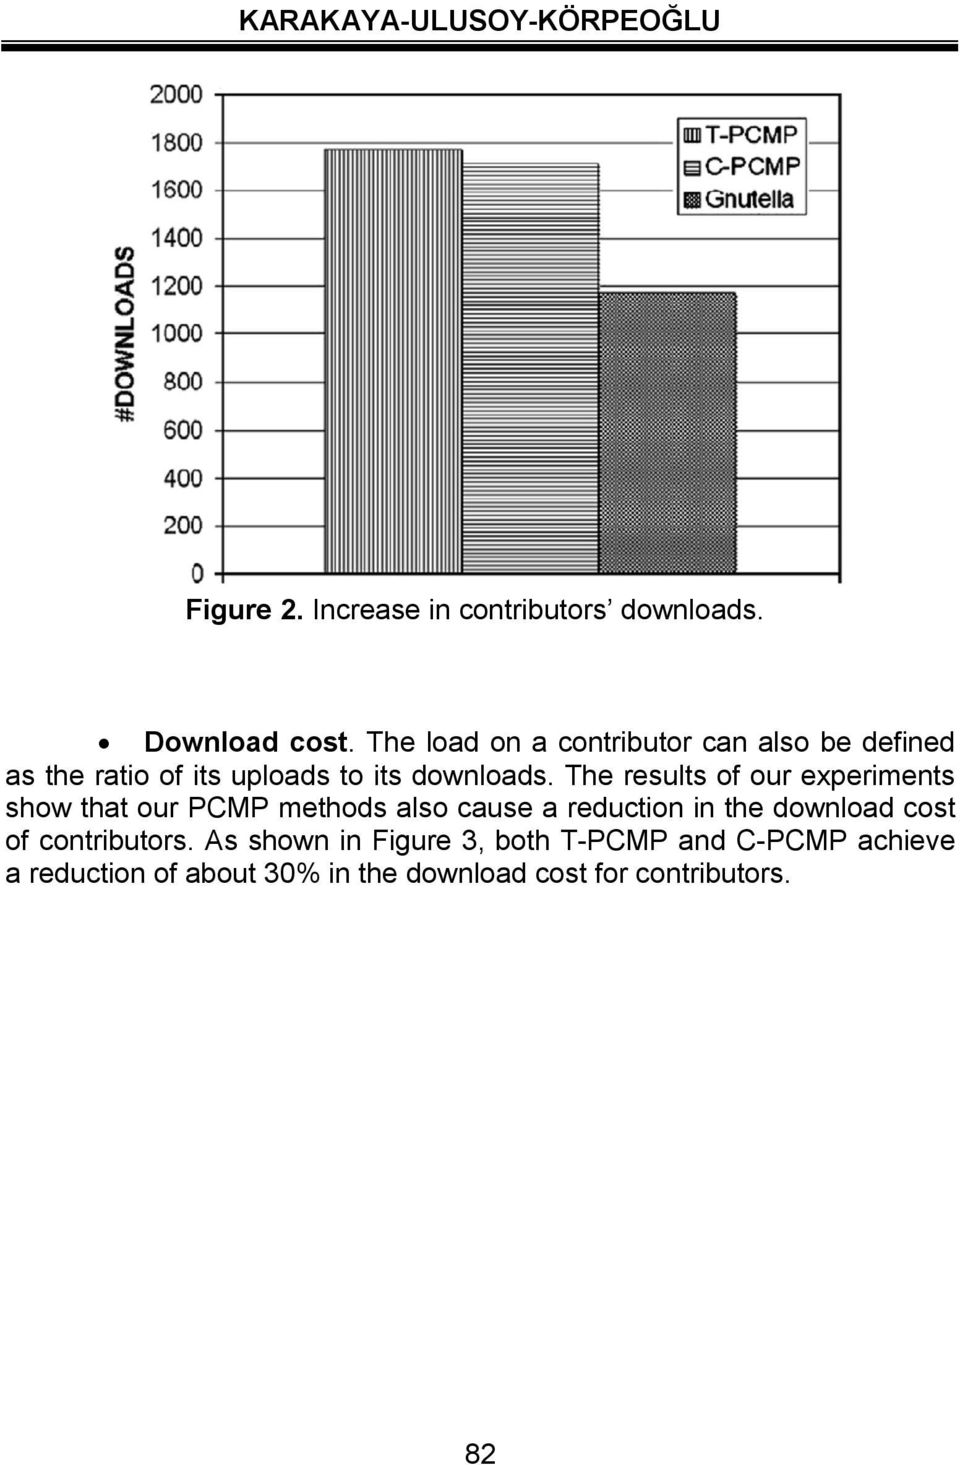 The results of our experiments show that our PCMP methods also cause a reduction in the download